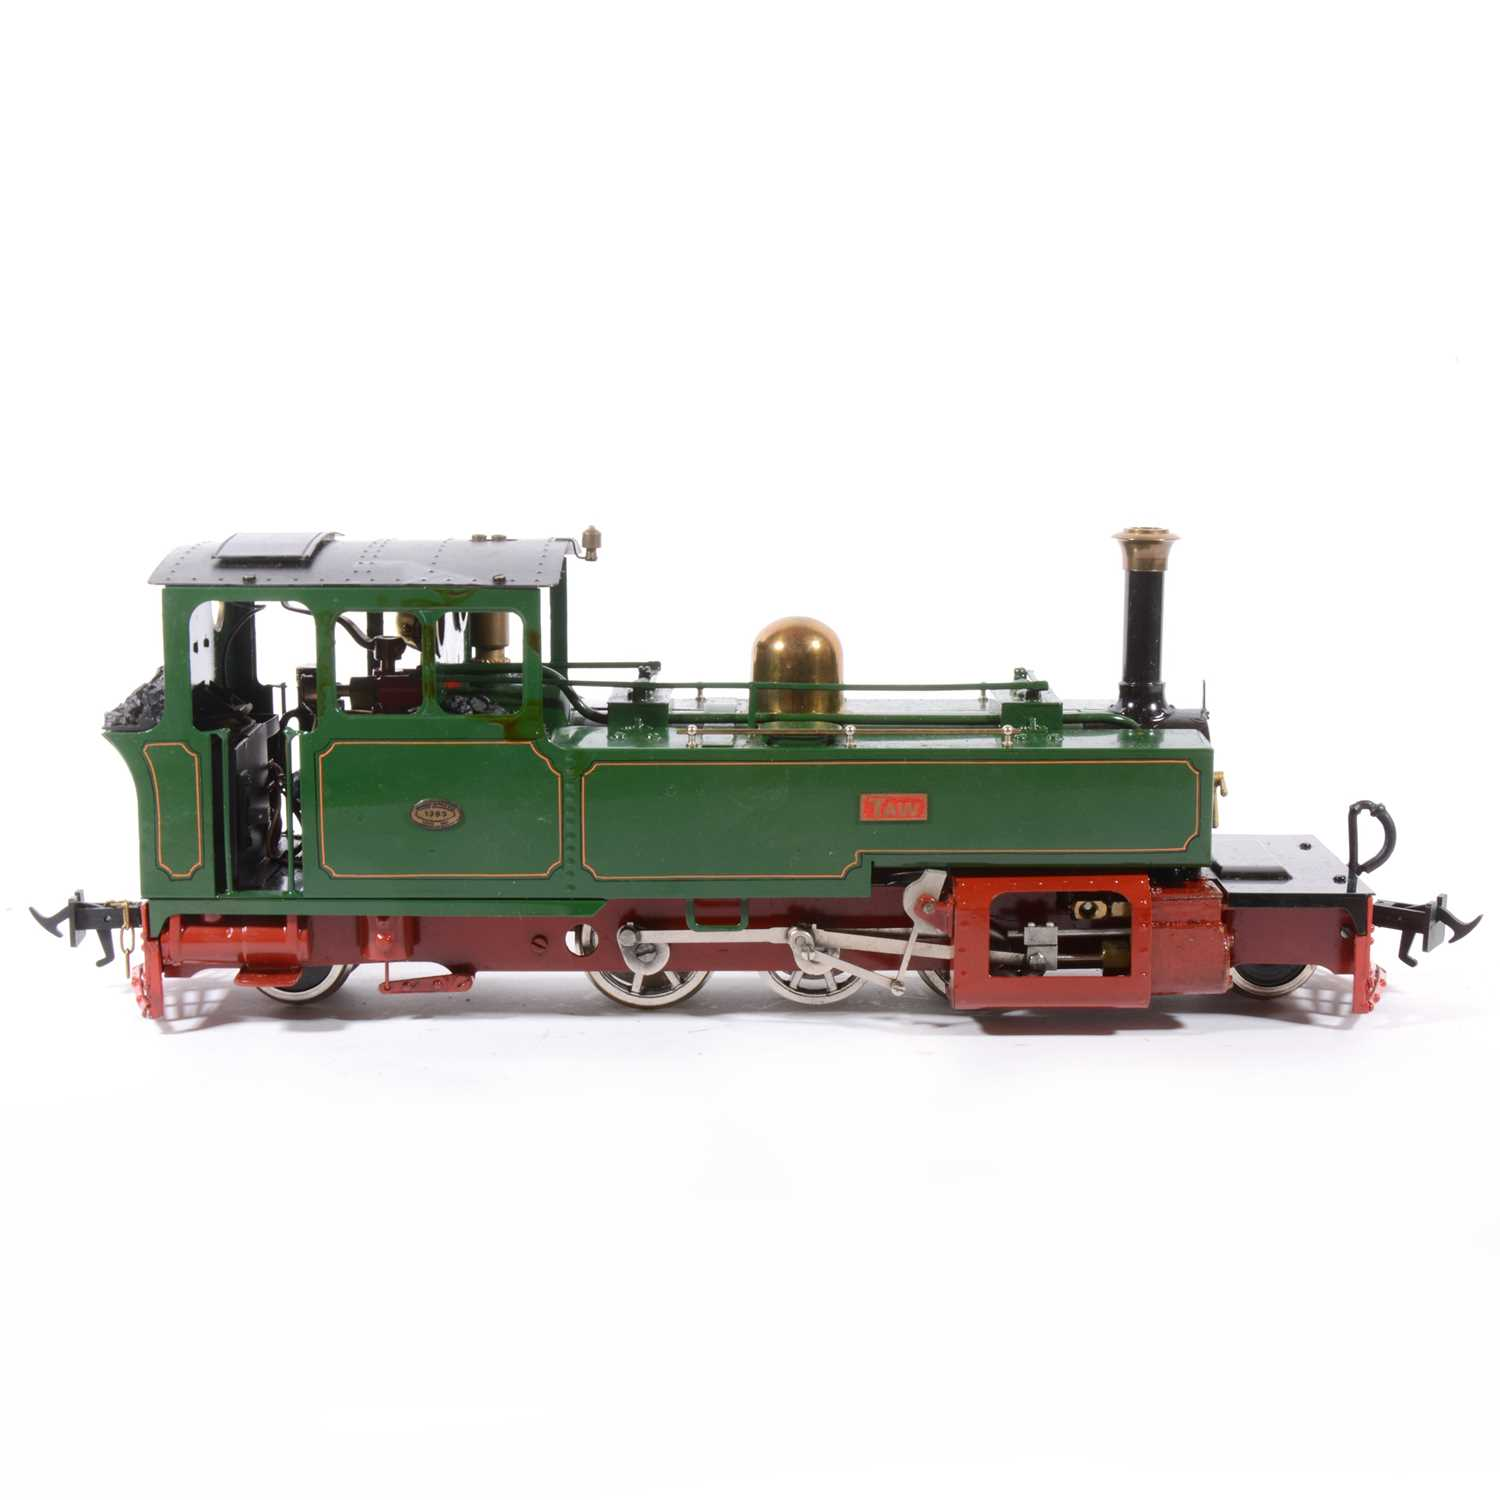 15 - Roundhouse live steam, gauge 1 / G scale, 32mm locomotive, L&B'Taw' 2-6-2.